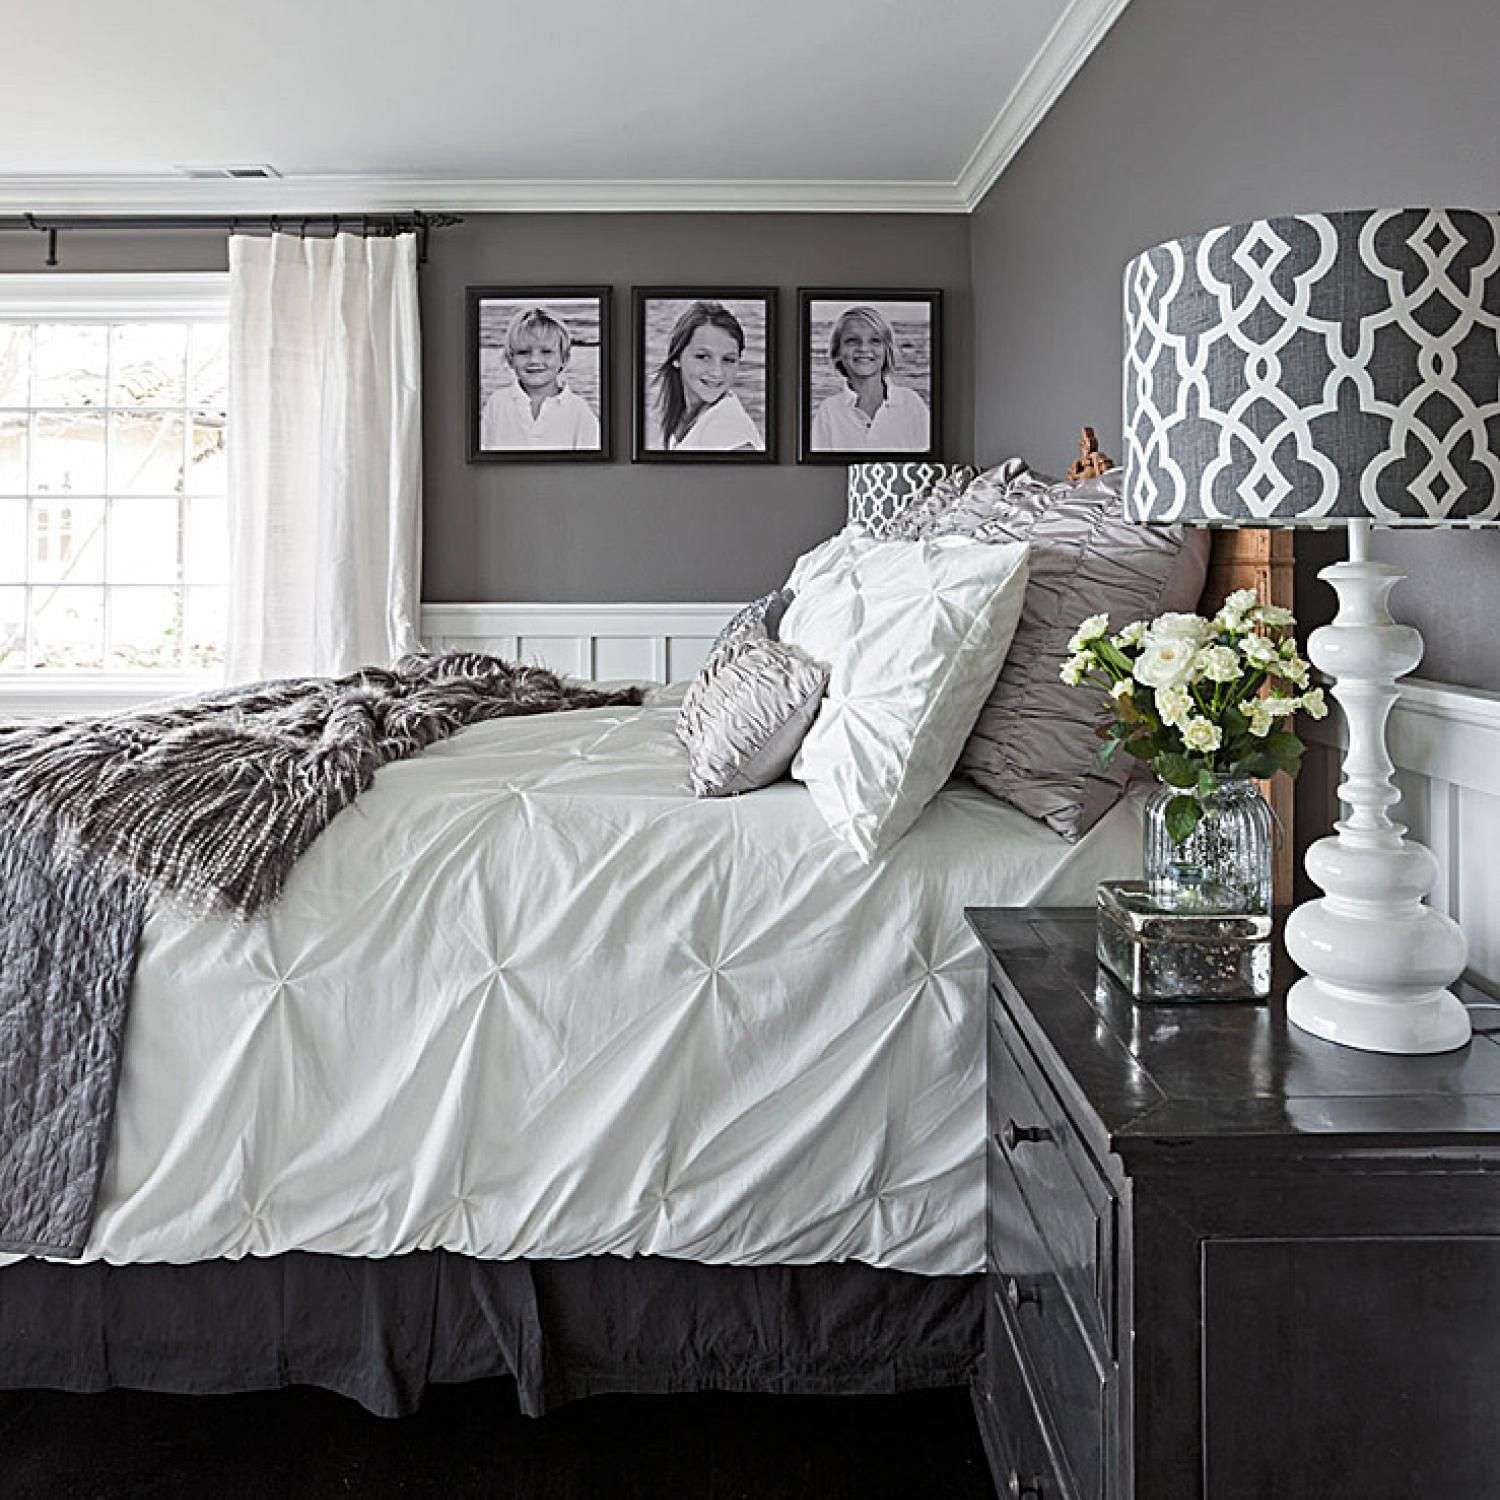 Black wall paint bedroom -  Coverings From T Maxx Target And Z Gallerie In This Gray Bedroom Photo John Granen Design Kristi Spouse Like The Lamp And Wall Color Photos